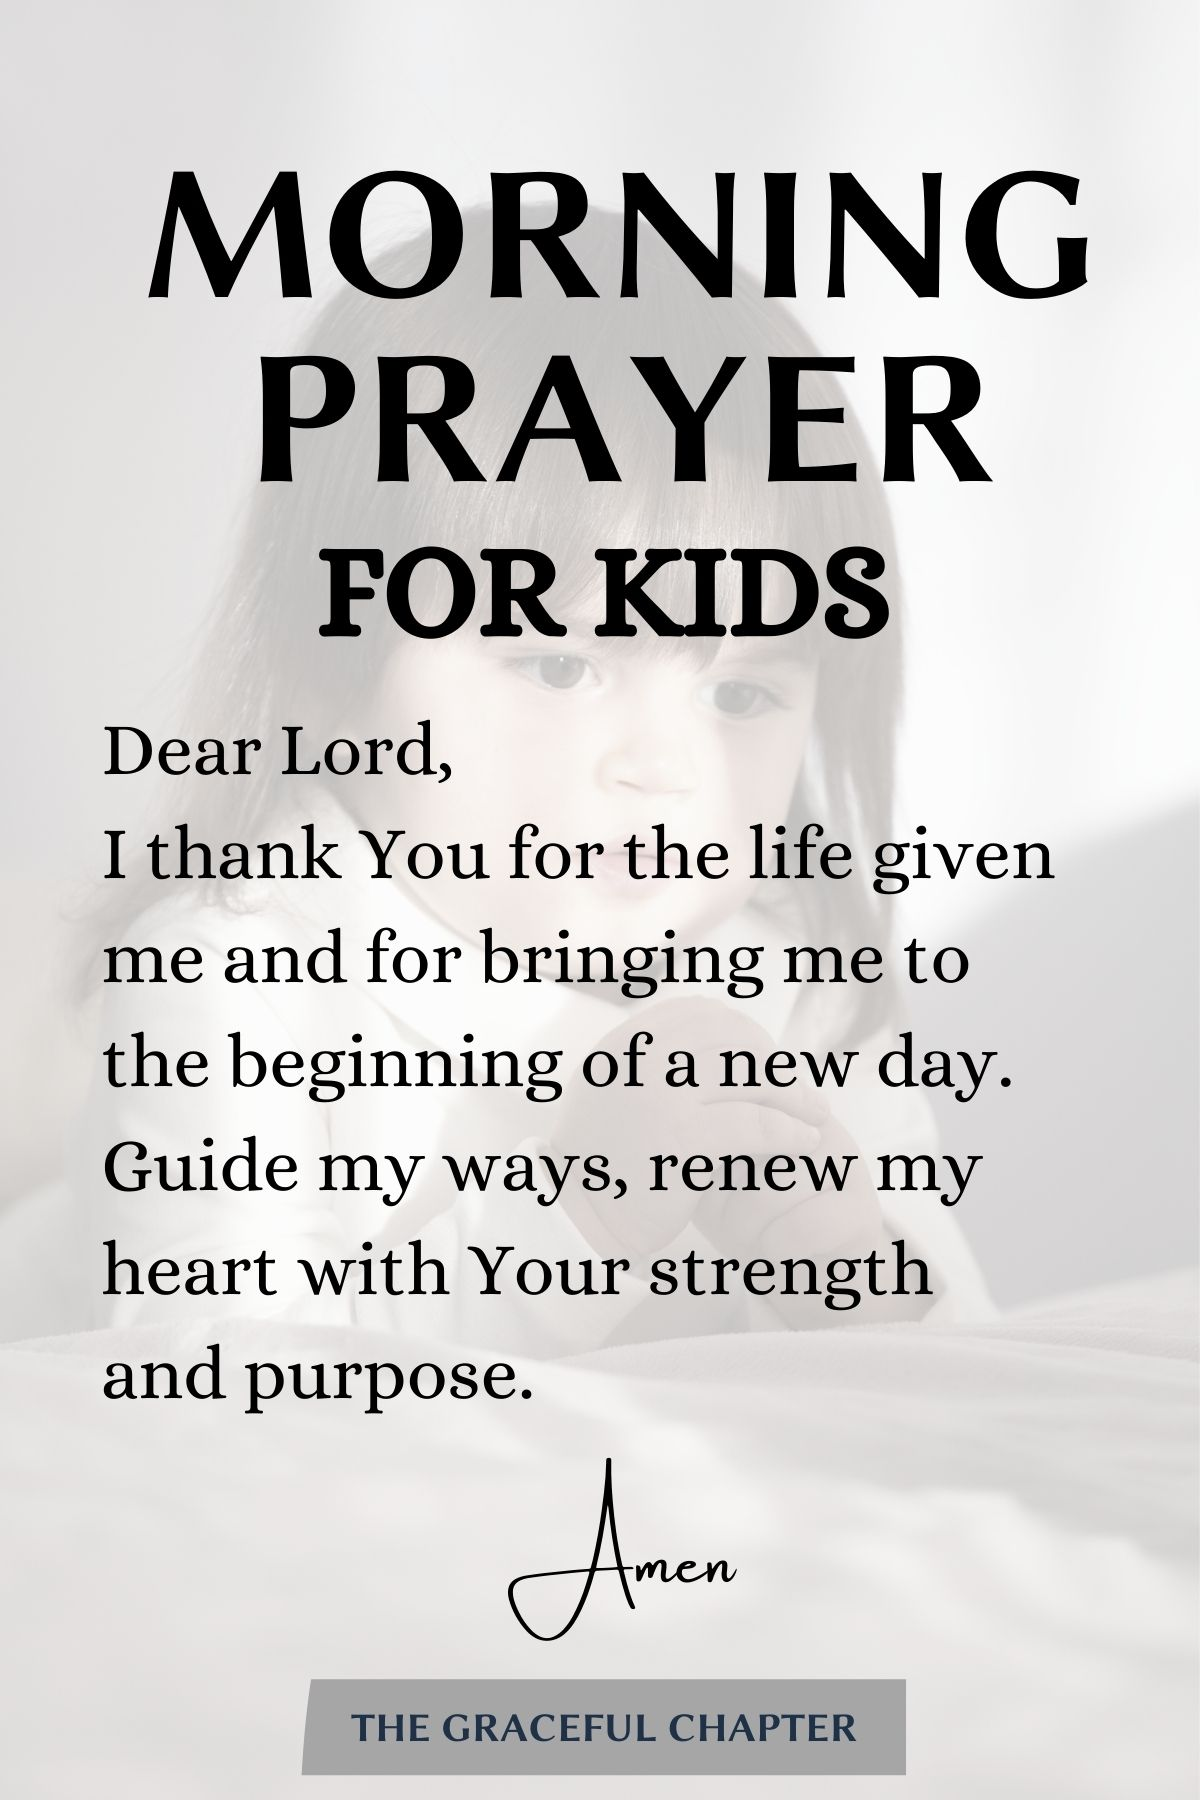 A simple morning prayer for kids